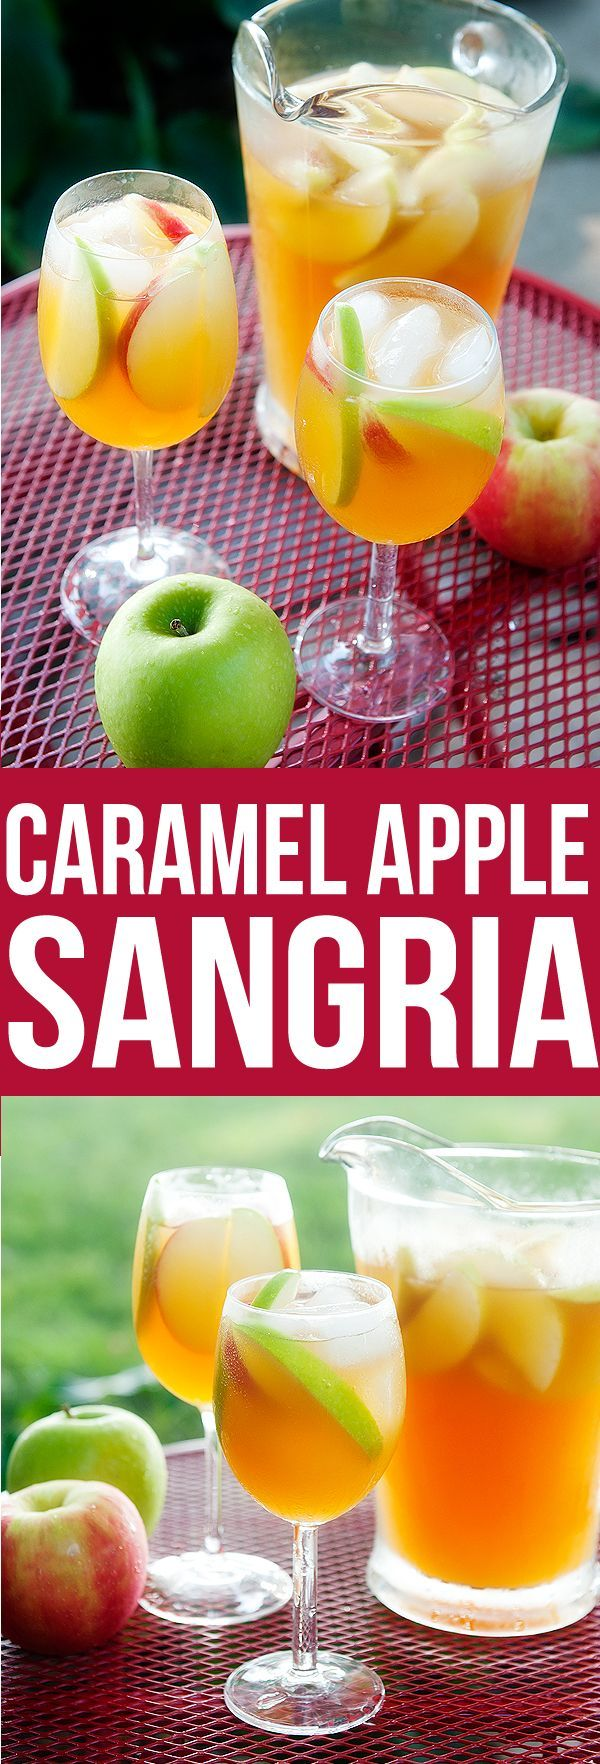 Caramel Apple Sangria, I will try using asti moscato instead of Pinot Grigio, will be sweeter and sparkling a bit.